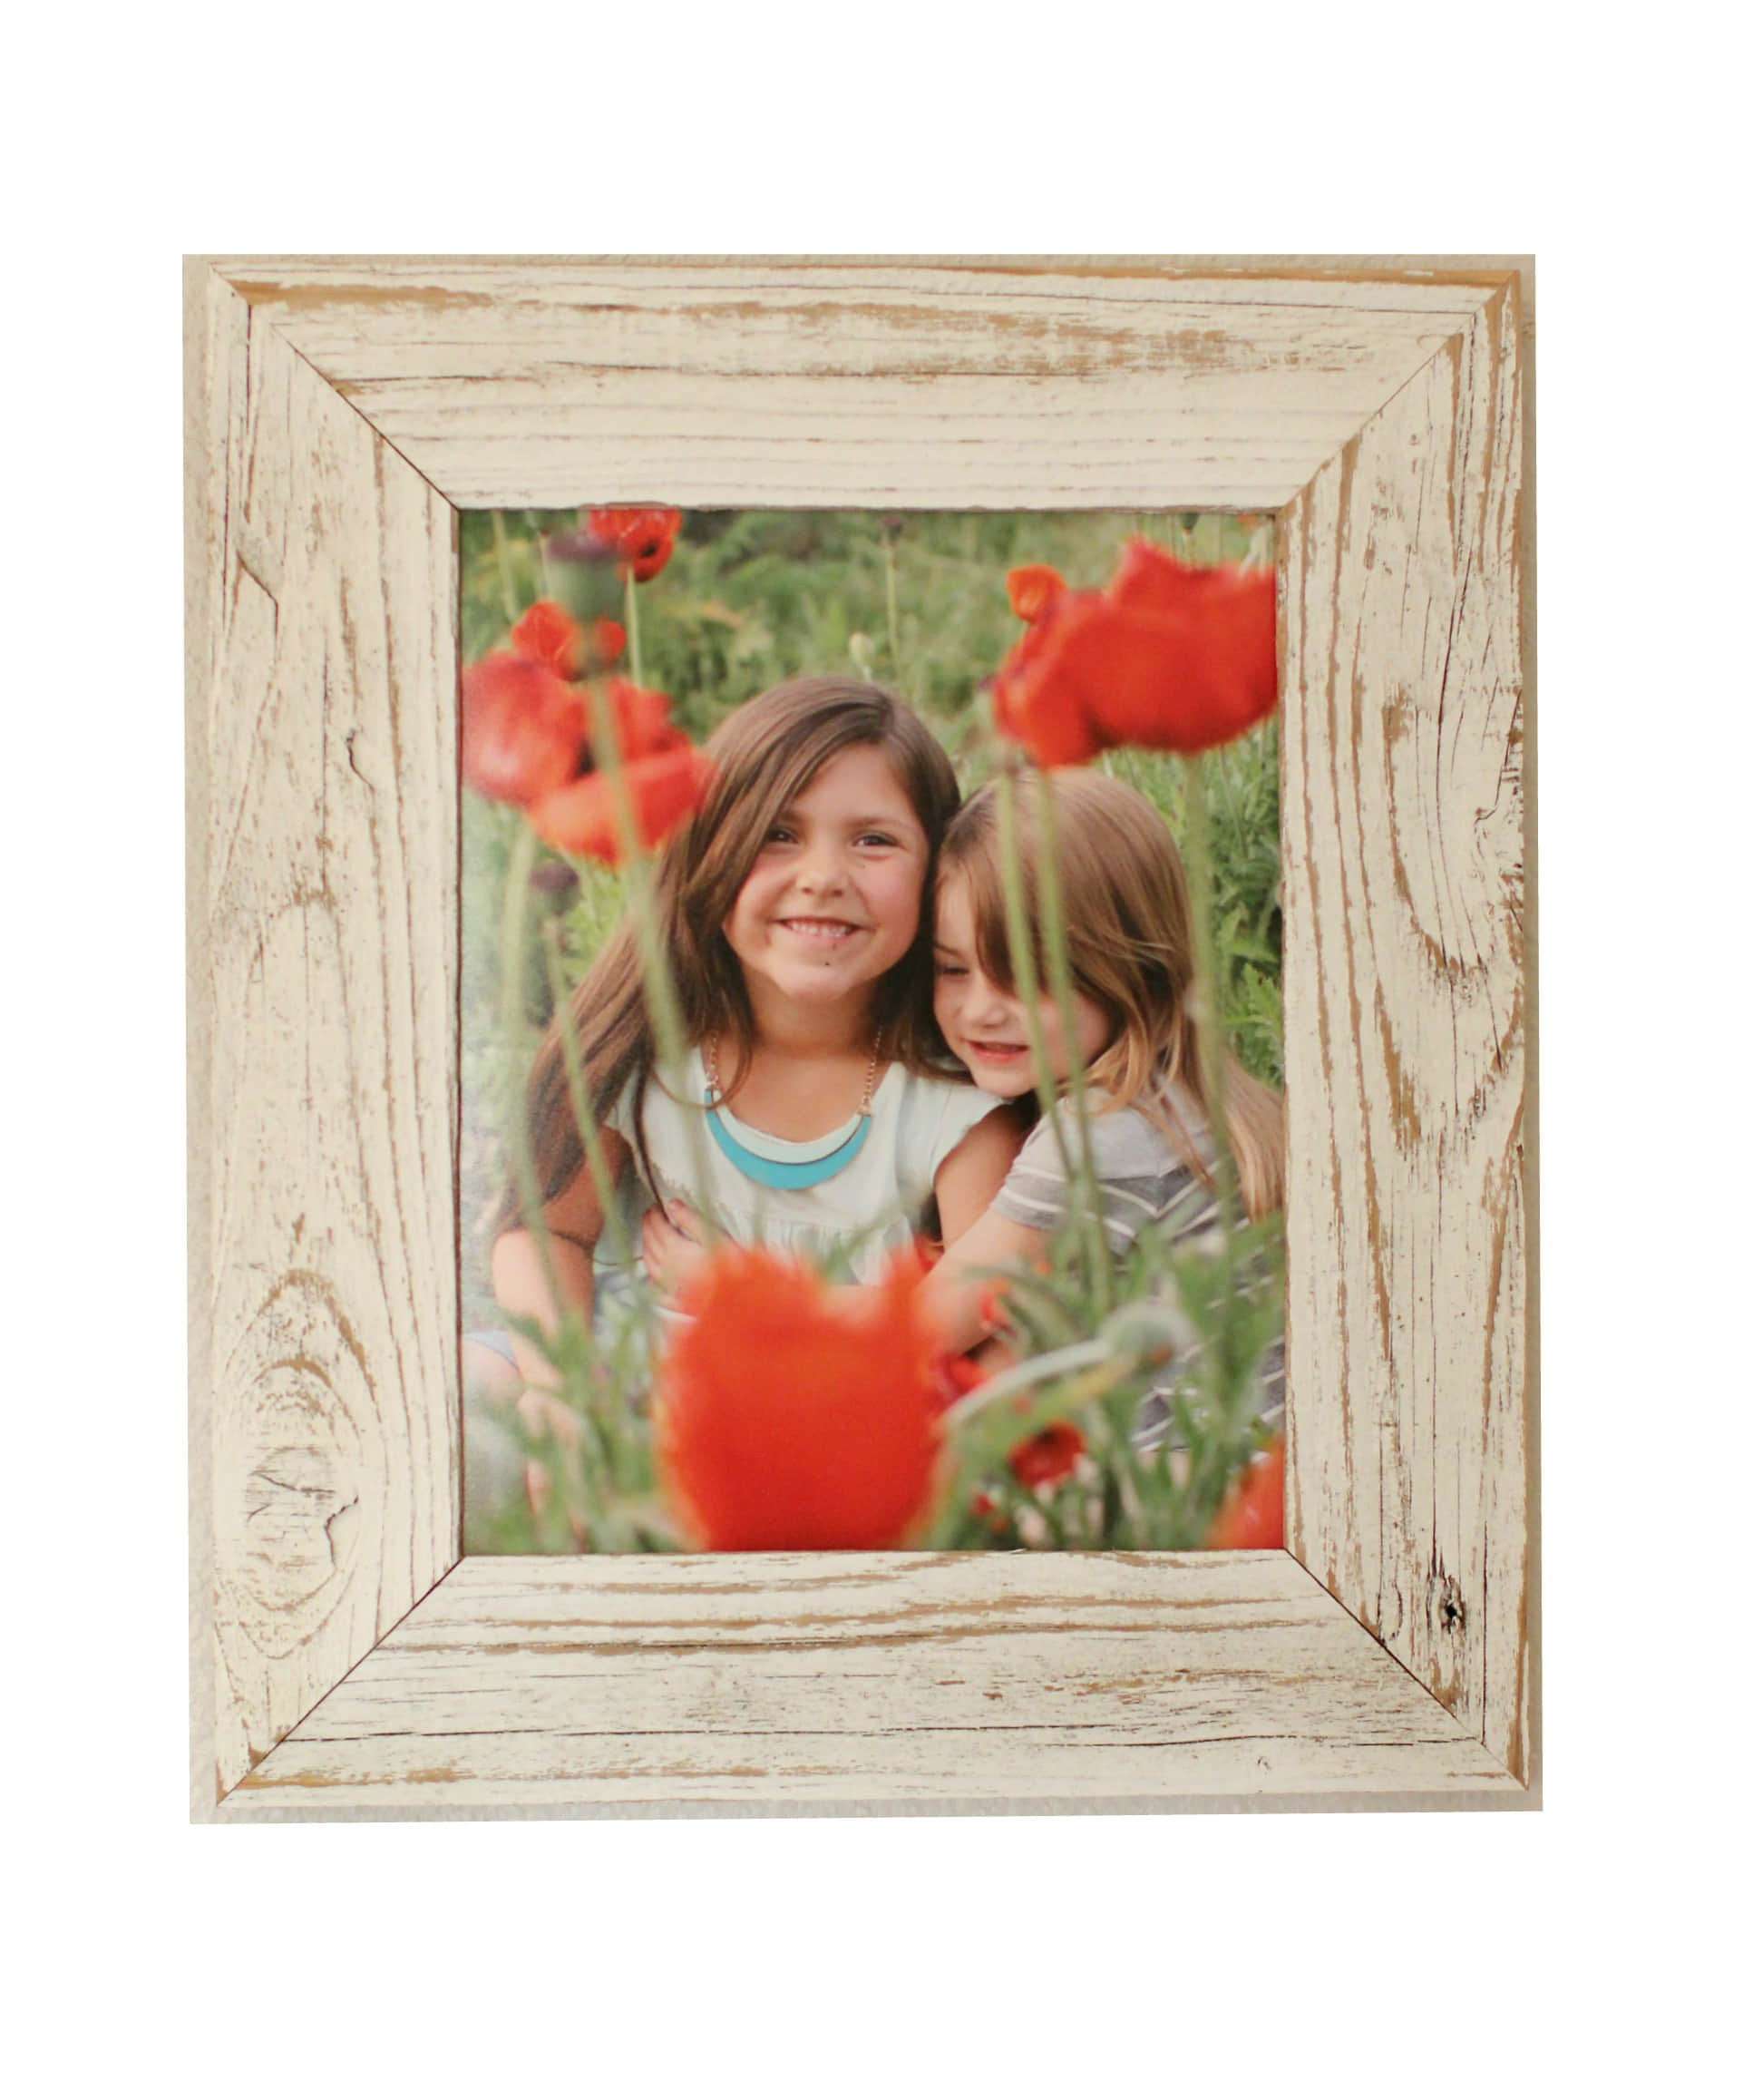 Rustic Picture Frames Png Barnwood Frames Rustic Reclaimed Wood Picture Frames Custom Sizes